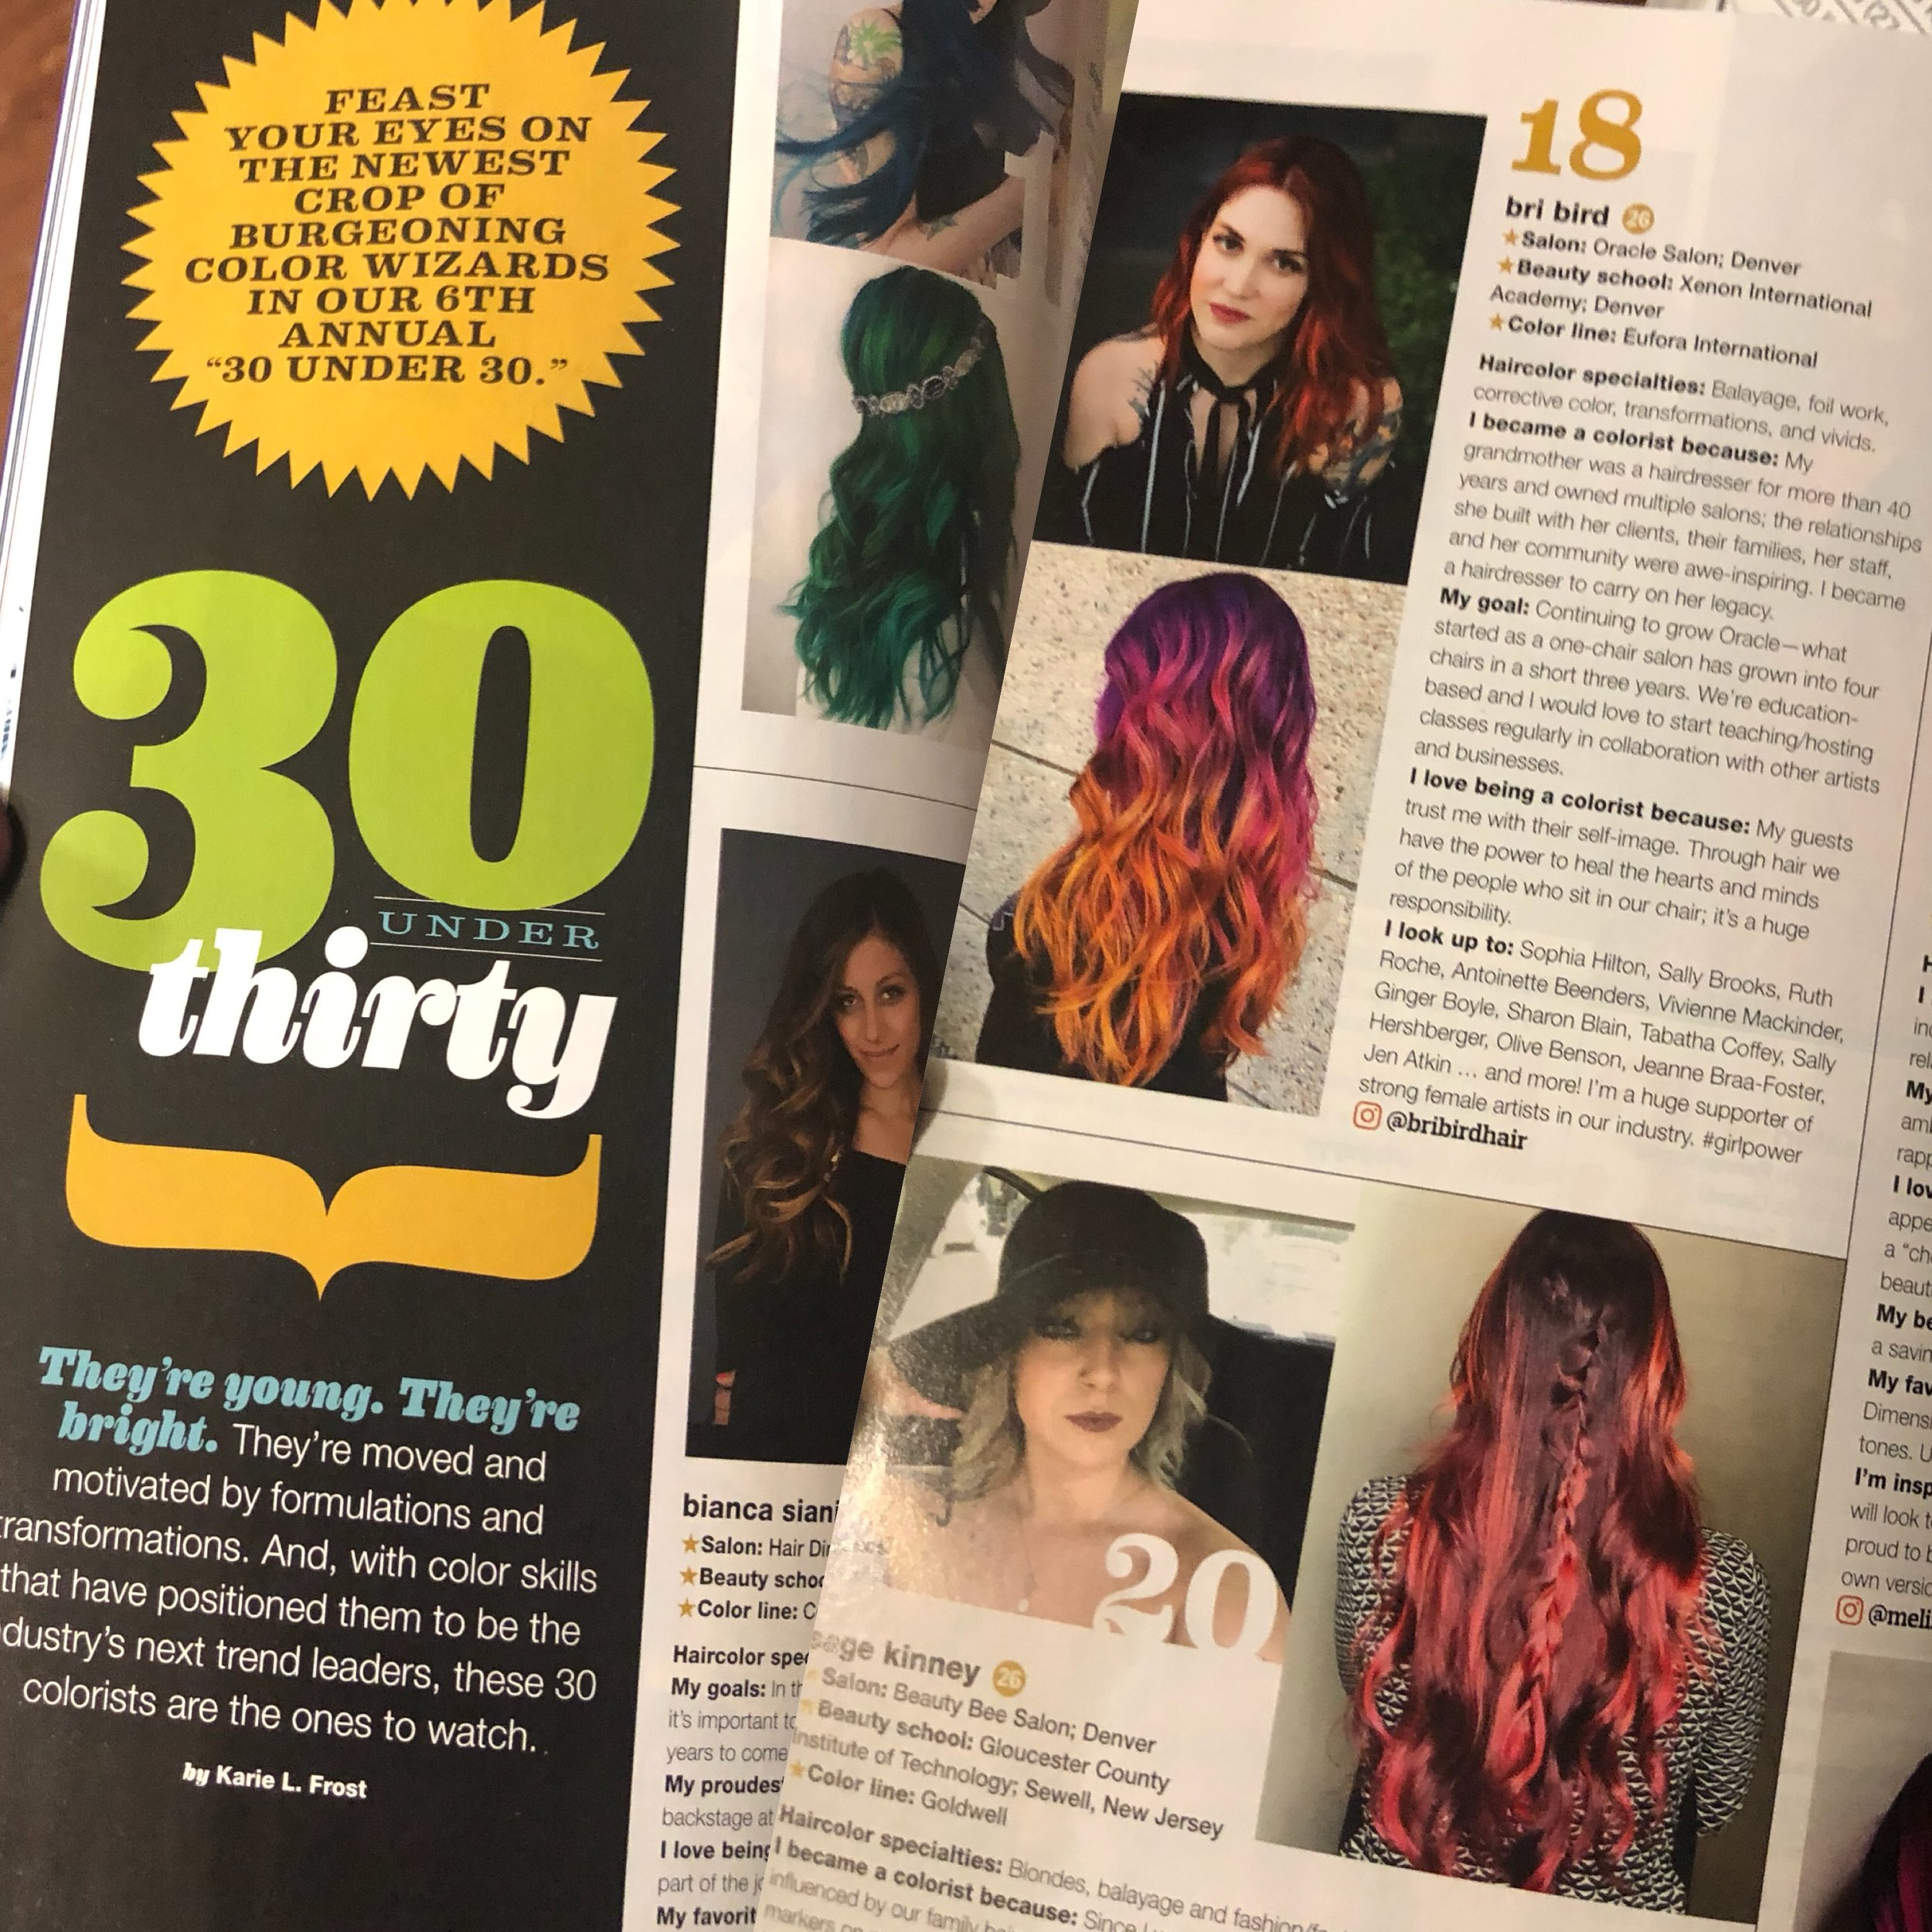 Voted one of BeautyLaunchpad's 30 Under 30 Colorists!